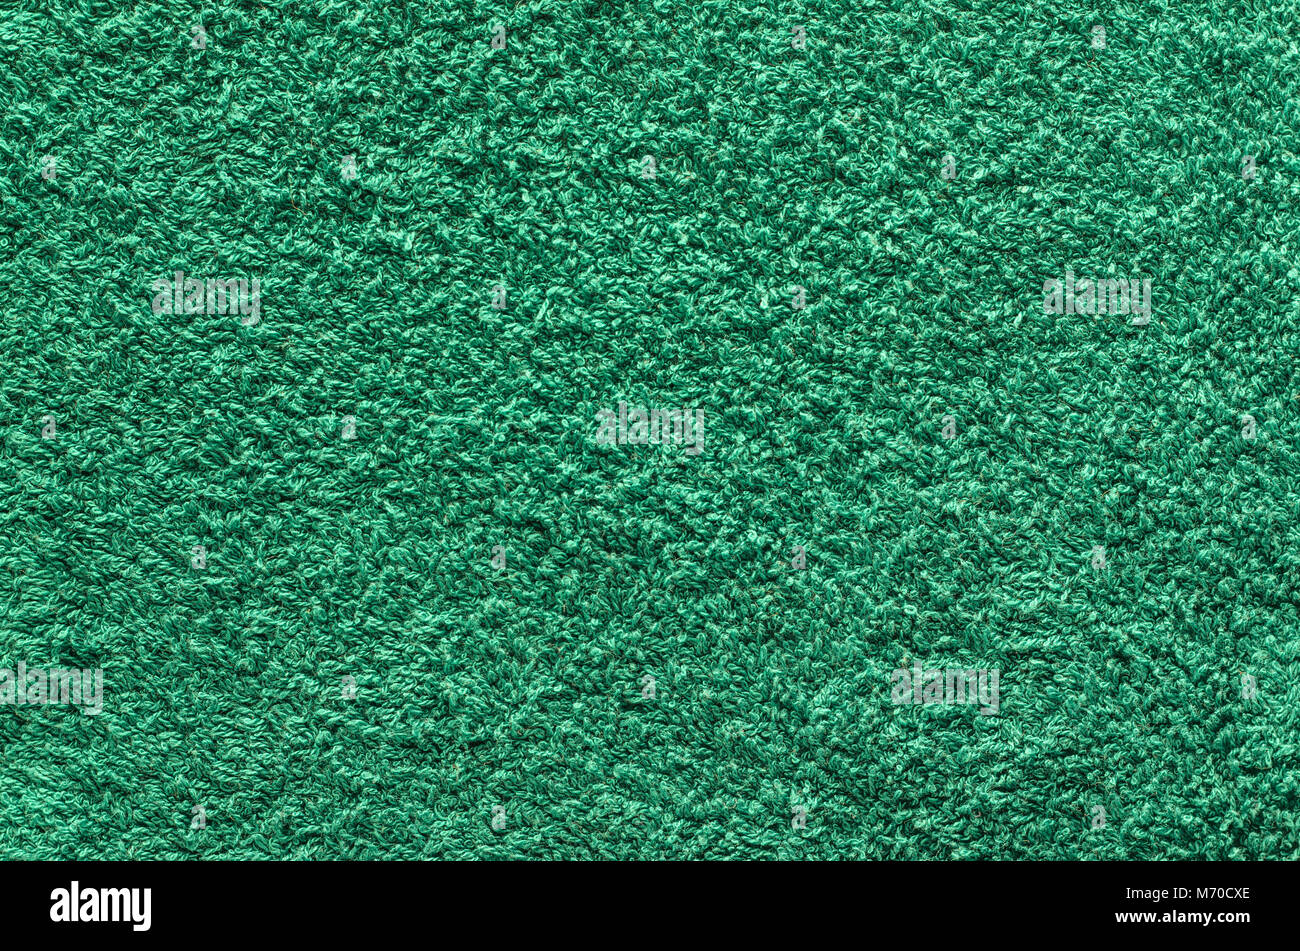 Abstract background of shaggy green carpet pile. Cloth texture with long fibers - Stock Image